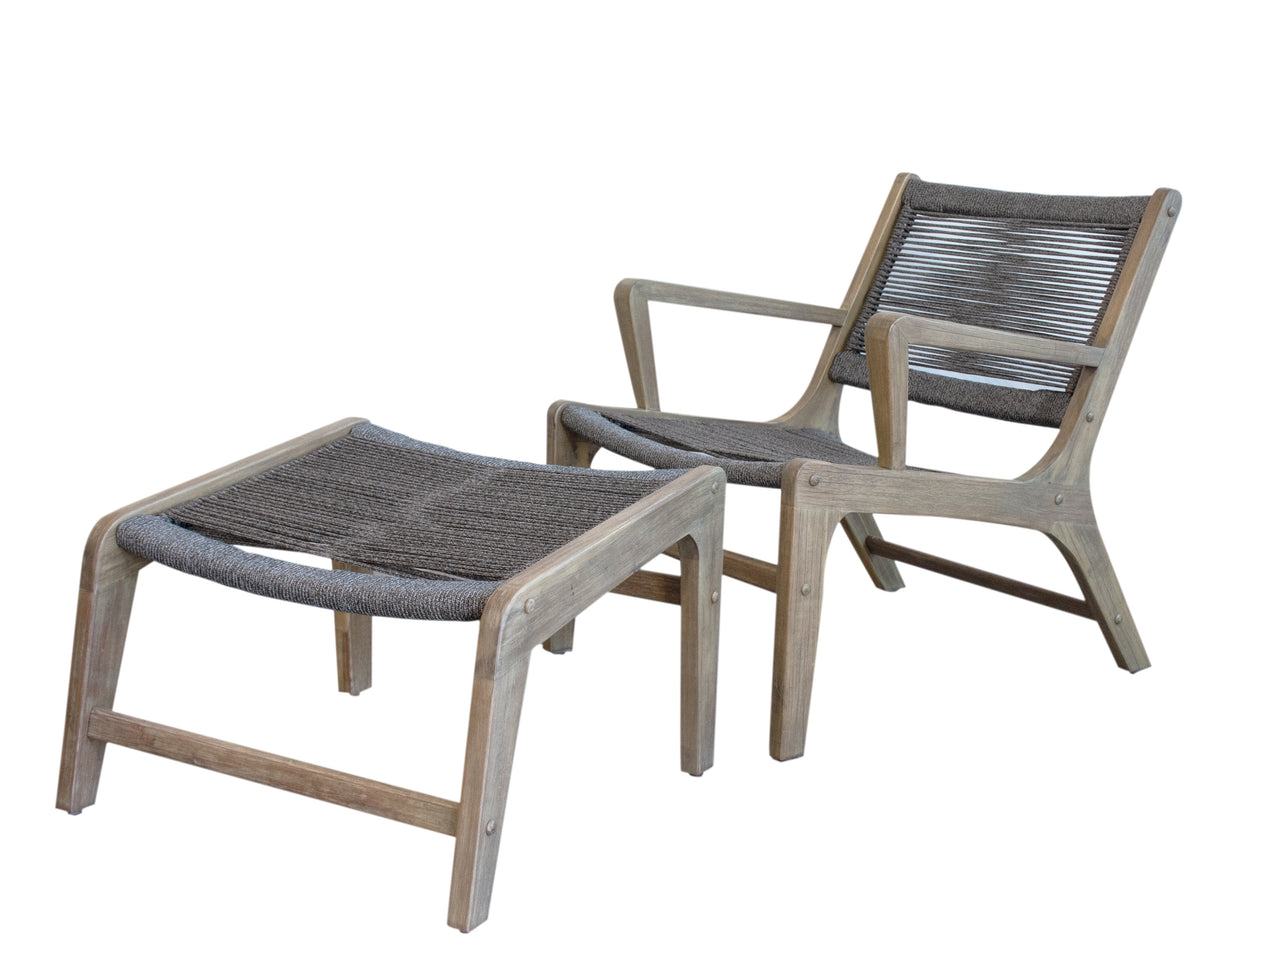 Oceans arm chair & stool